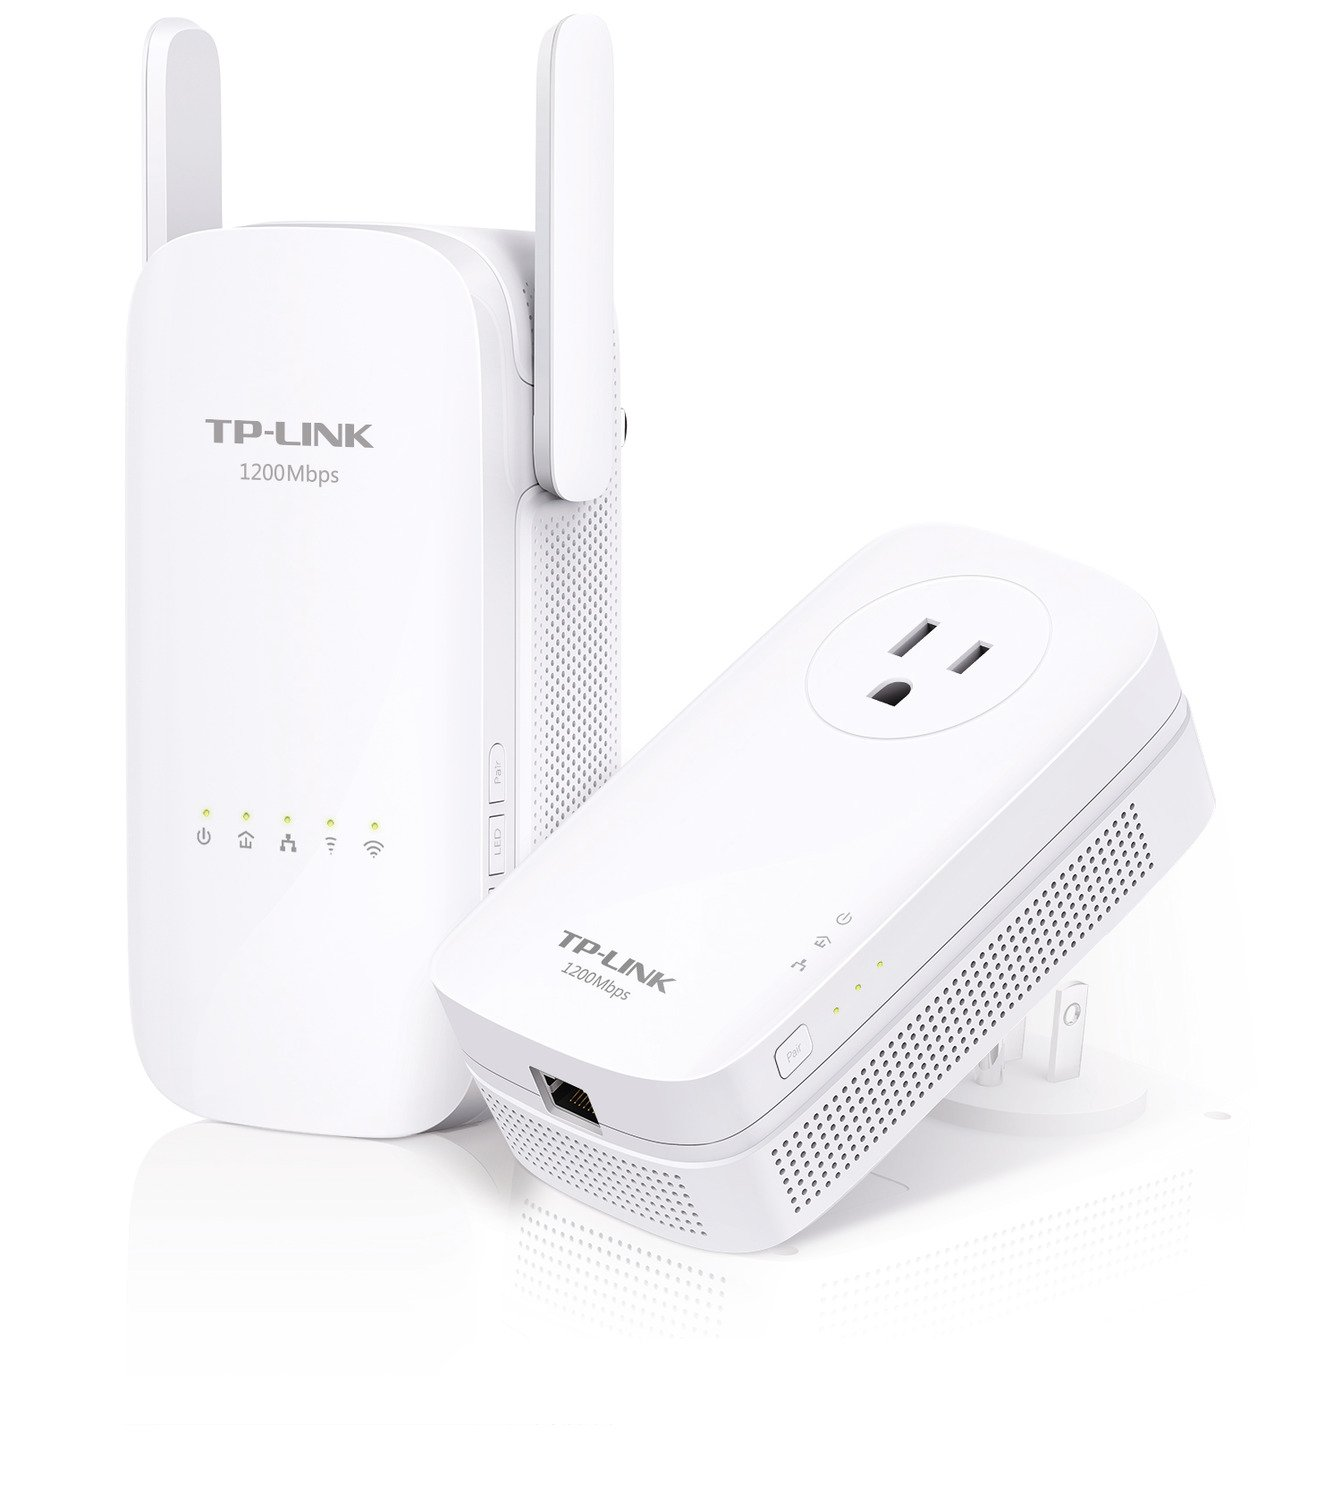 TP-Link AC1200 Wi-Fi Range Extender, AV1200 Powerline Edition, Extra Outlet (TL-WPA8630 KIT) by TP-Link